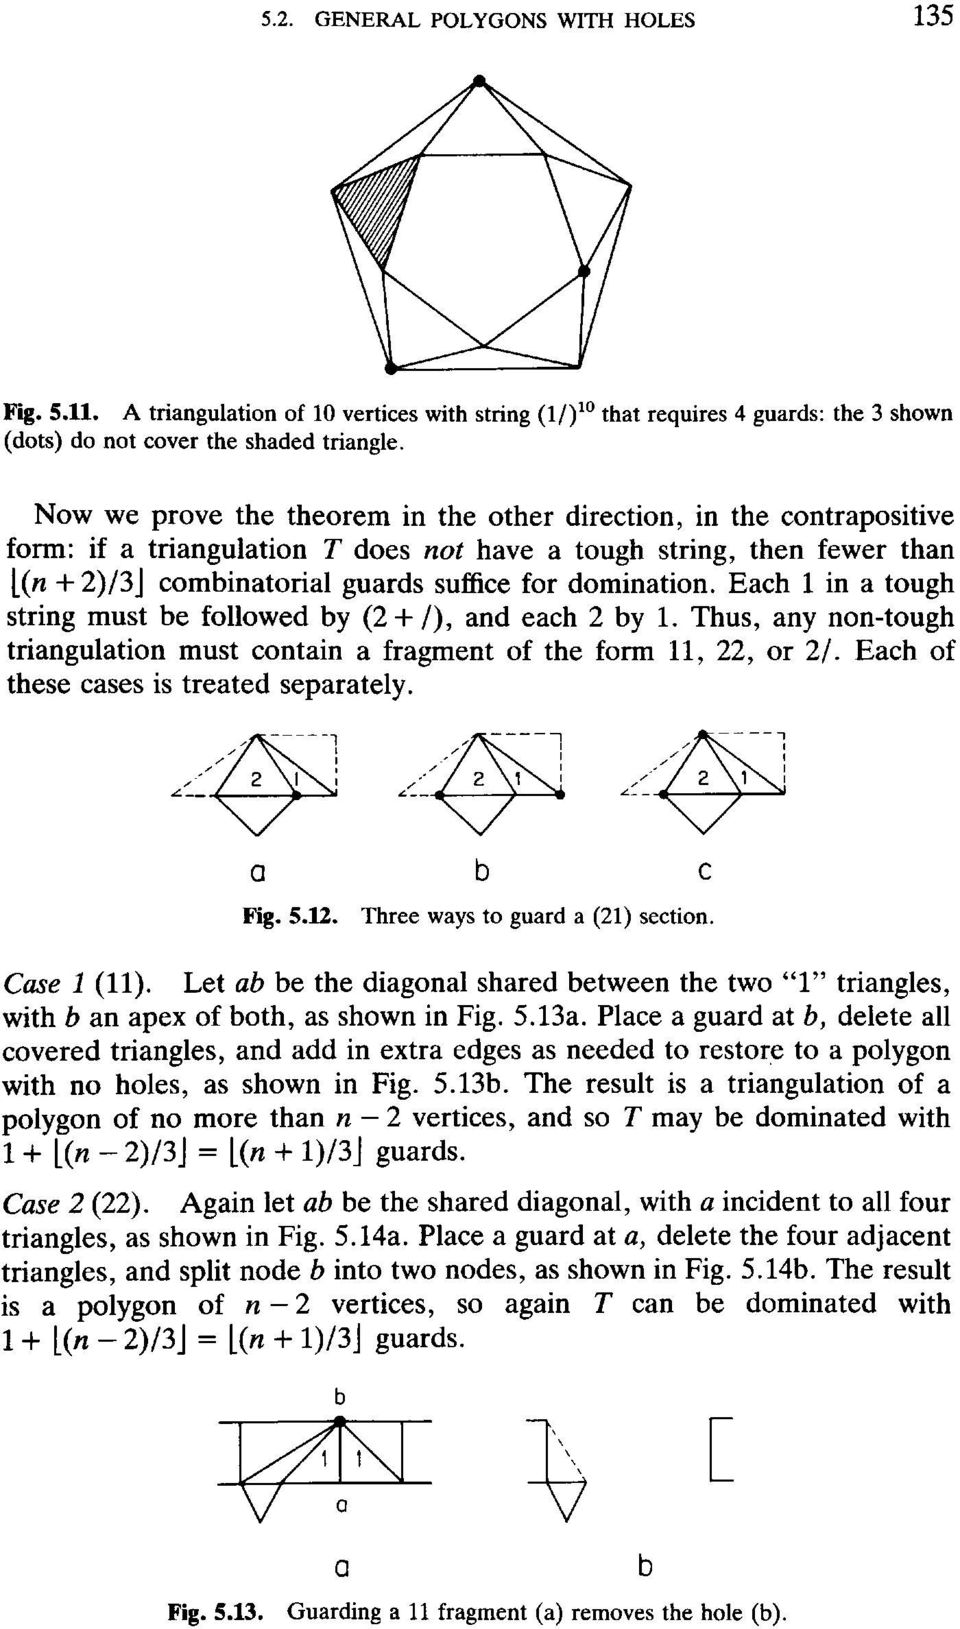 Each 1 in a tough string must be followed by (2 + 1), and each 2 by 1. Thus, any non-tough triangulation must contain a fragment of the form 11, 22, or 2/. Each of these cases is treated separately.